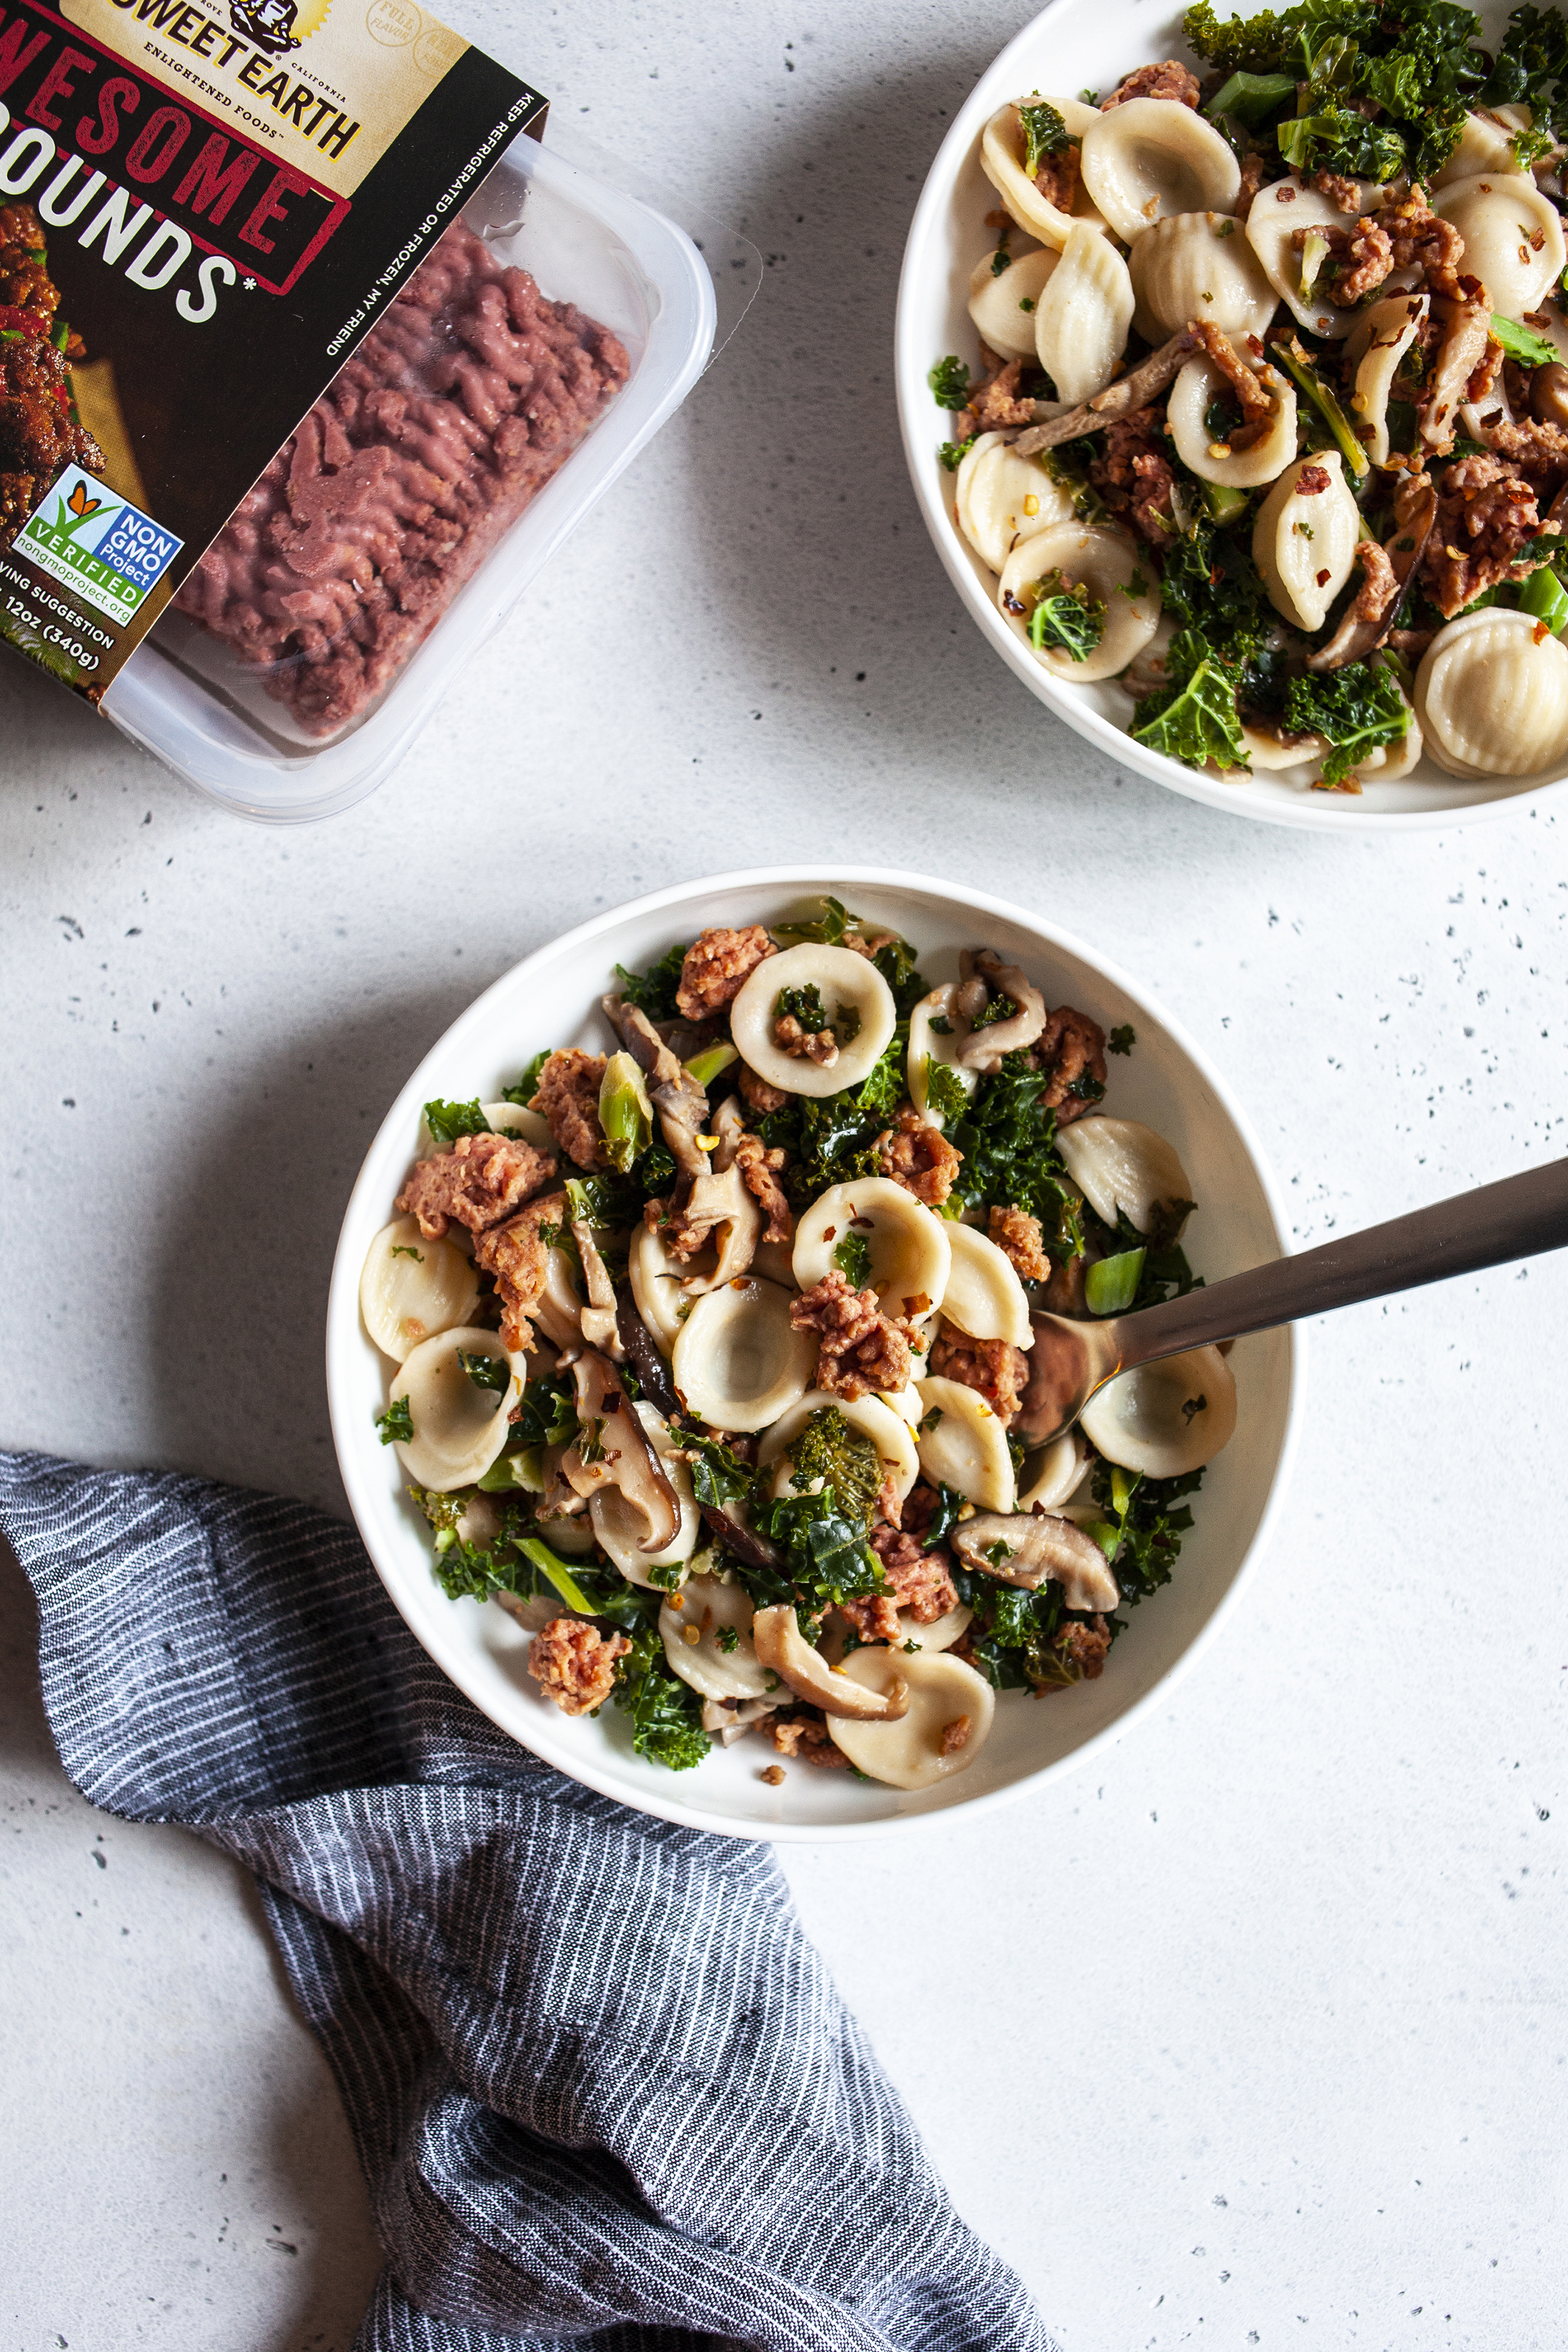 Protein Packed, Awesome Mushroom Kale Pasta